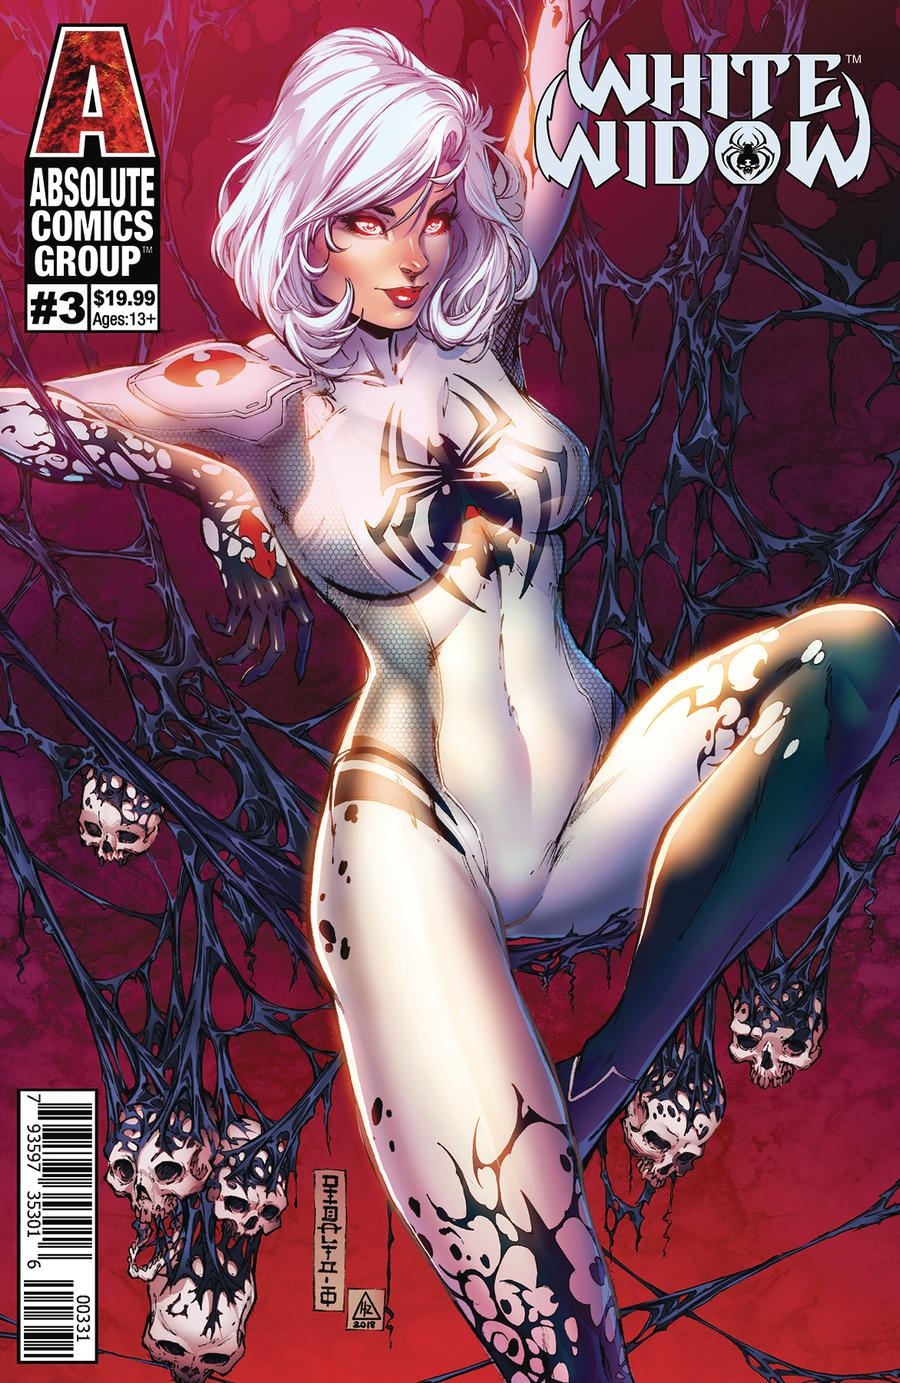 White Widow #3 Cover C Variant Mike Debalfo Lenticular Cover